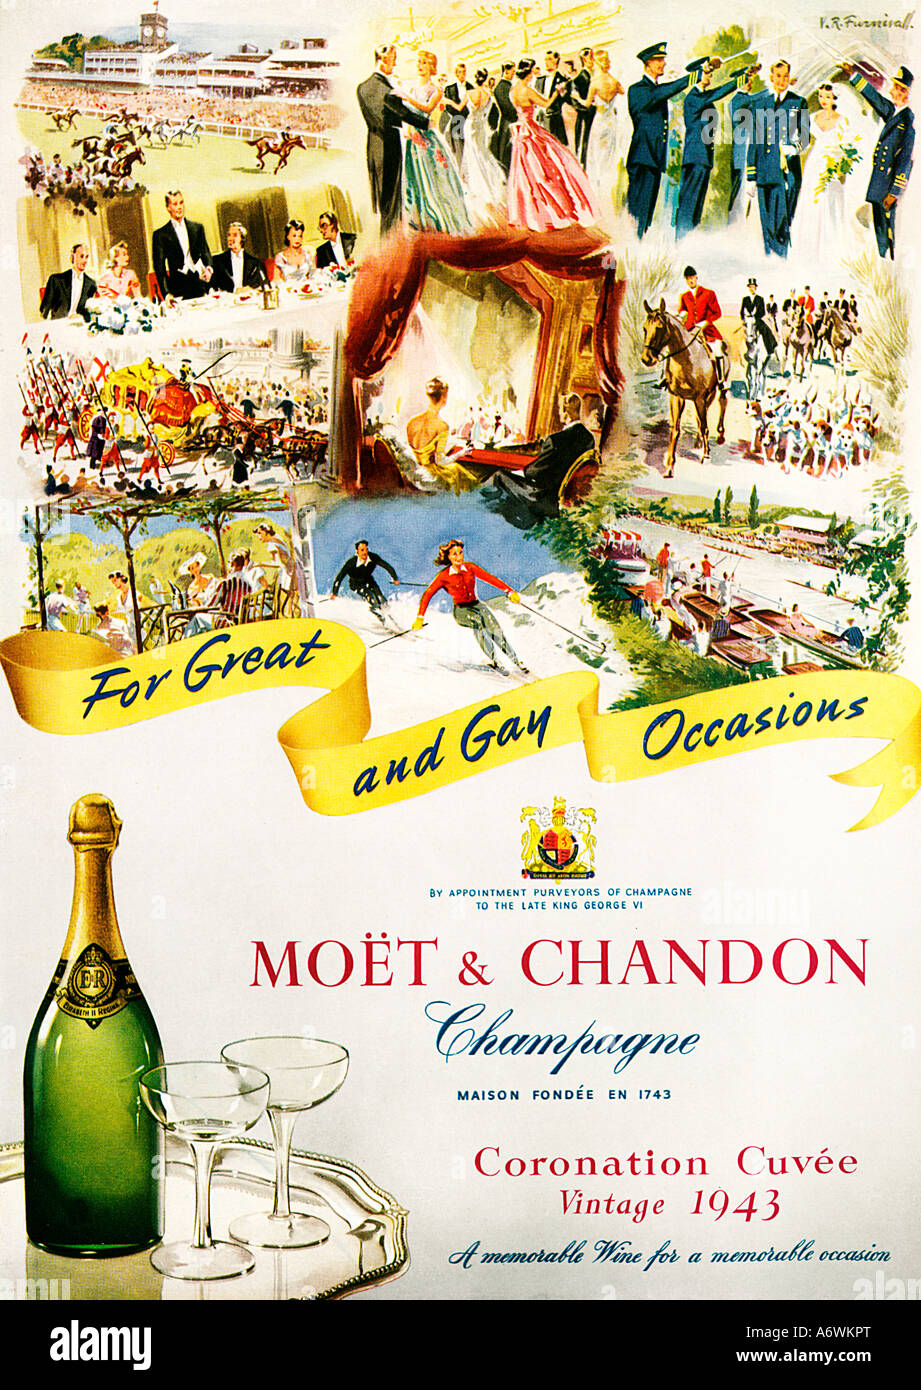 Moet Chandon Coronation year English advert for the French Champagne vintage 1943 For Great And Gay Occasions - Stock Image